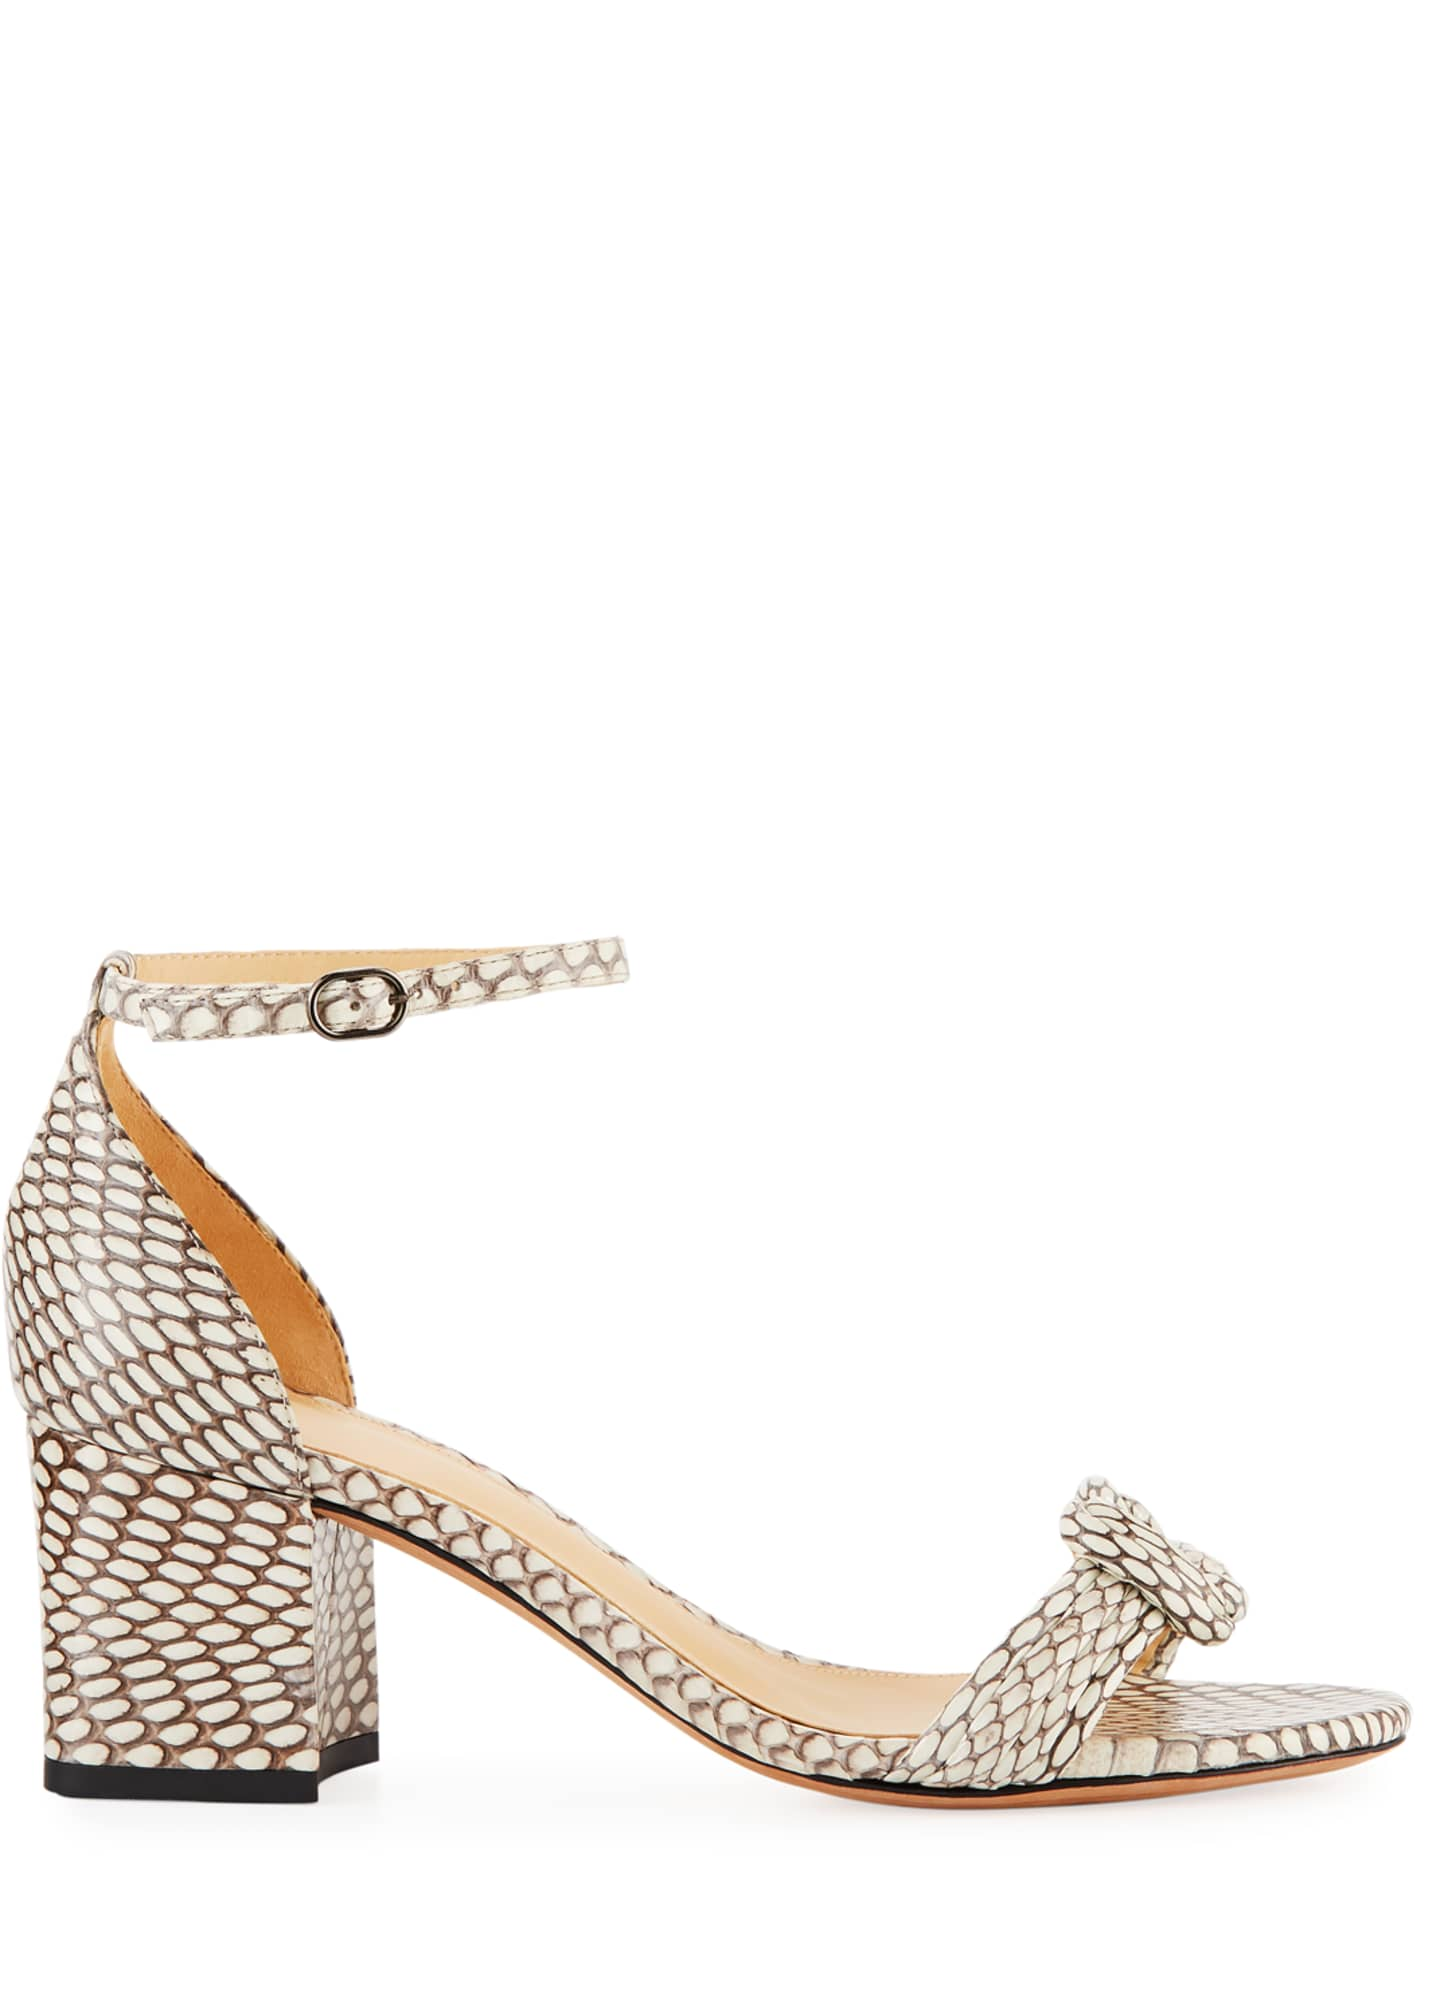 Image 2 of 3: Malica Knot Snakeskin Sandals